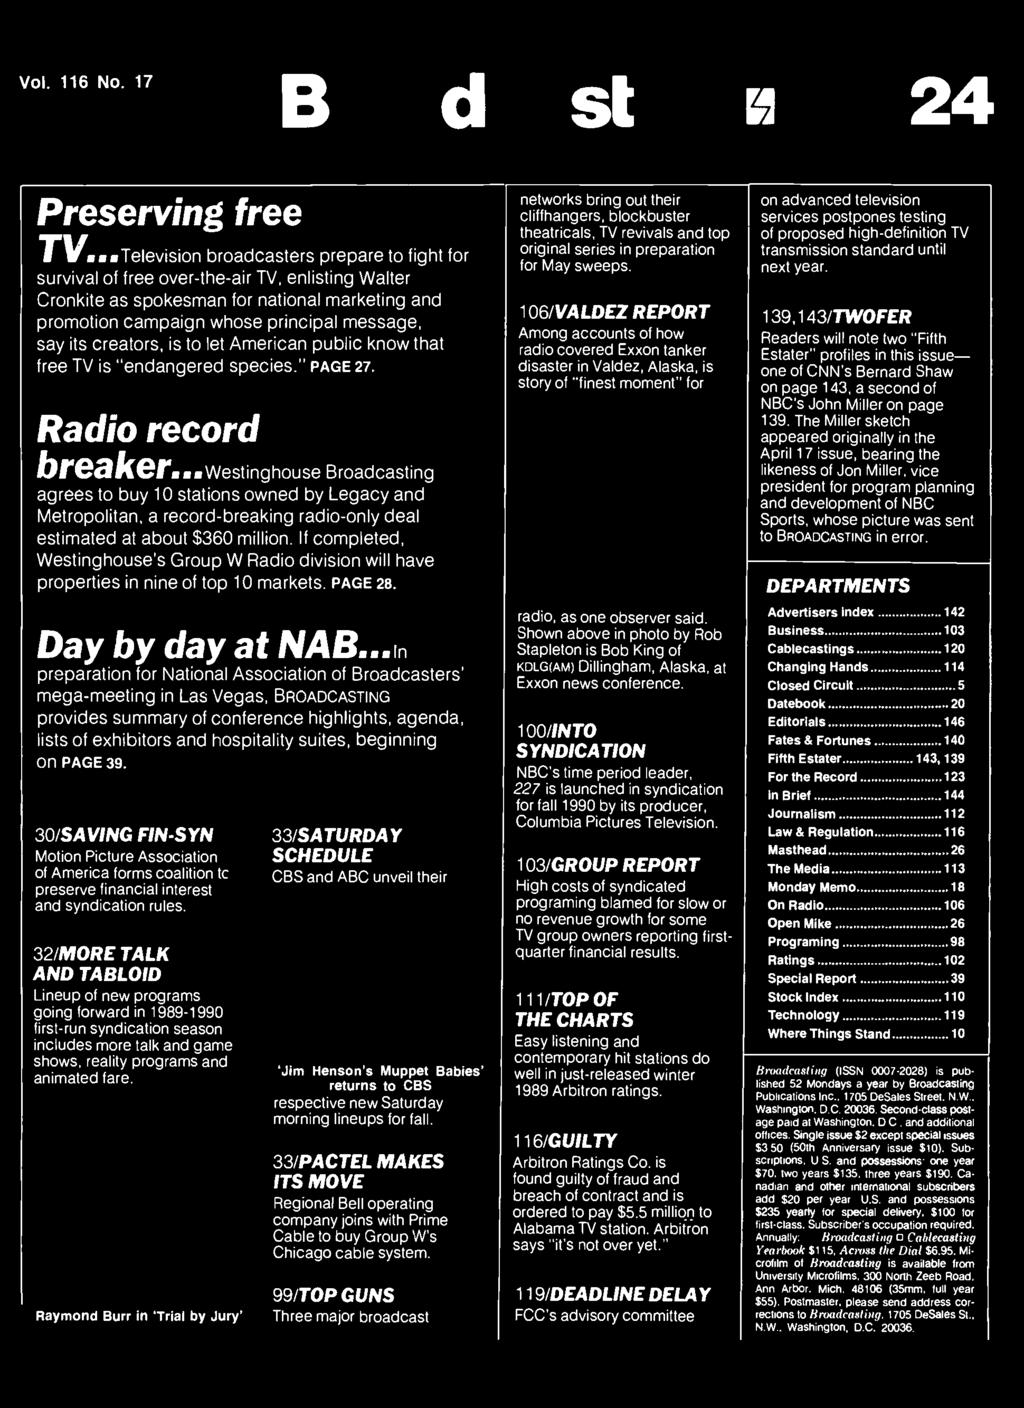 Broadcasting Ii Apr 24 Pdf Nakamichi Itower Apple Docking Speaker Ssf 351 Raymond Burr In Trial By Jury 33 Saturday Schedule Cbs And Abc Unveil